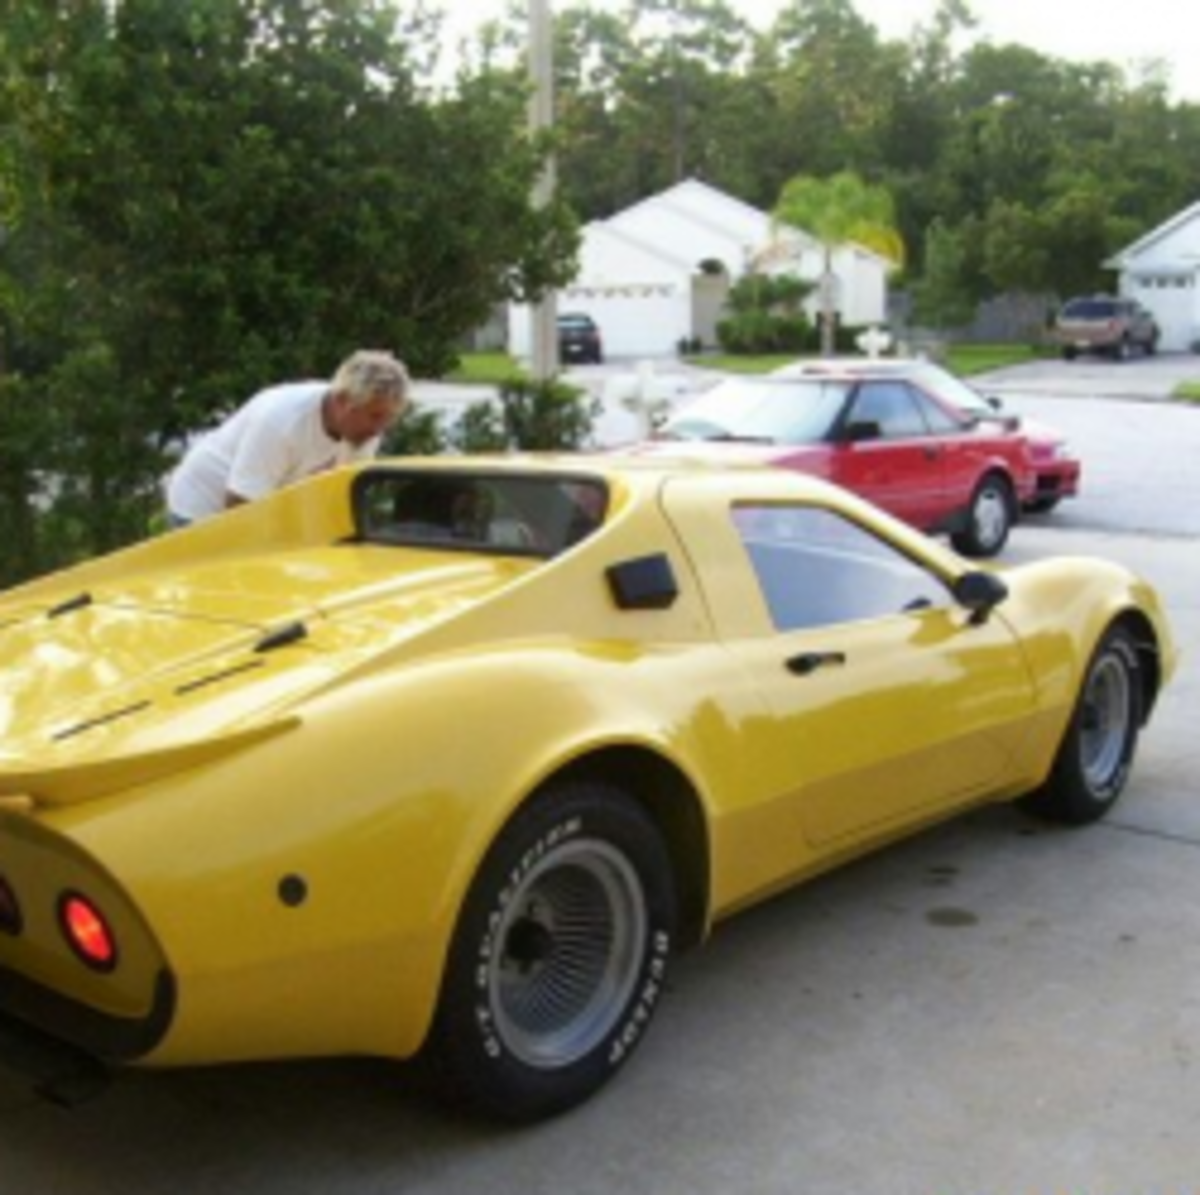 Kelmark GT Kit Car, Including Complete Instructions and Parts List